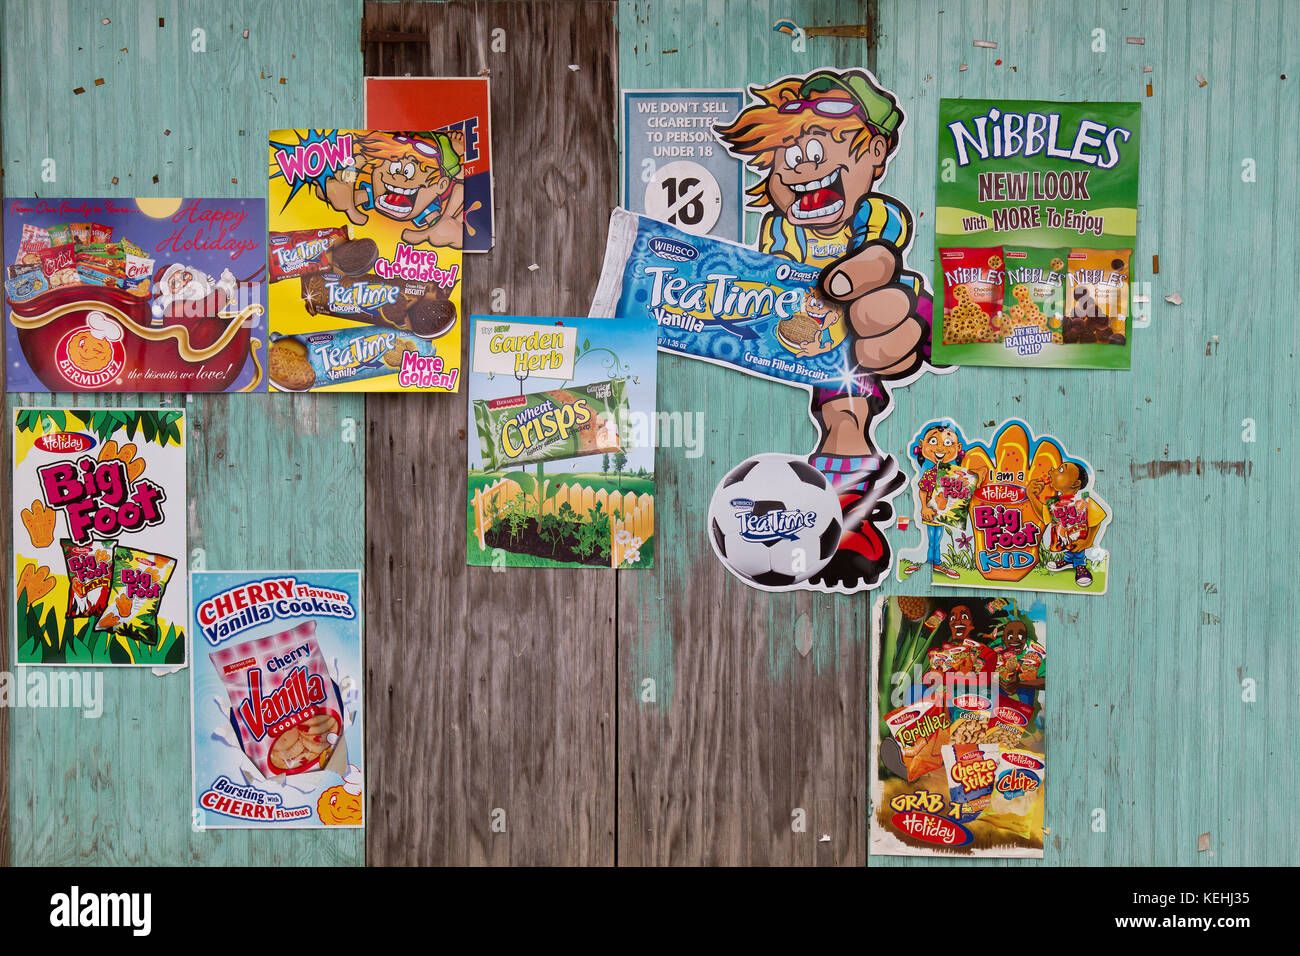 Advertising on a wall in Tobago, West Indies - Stock Image